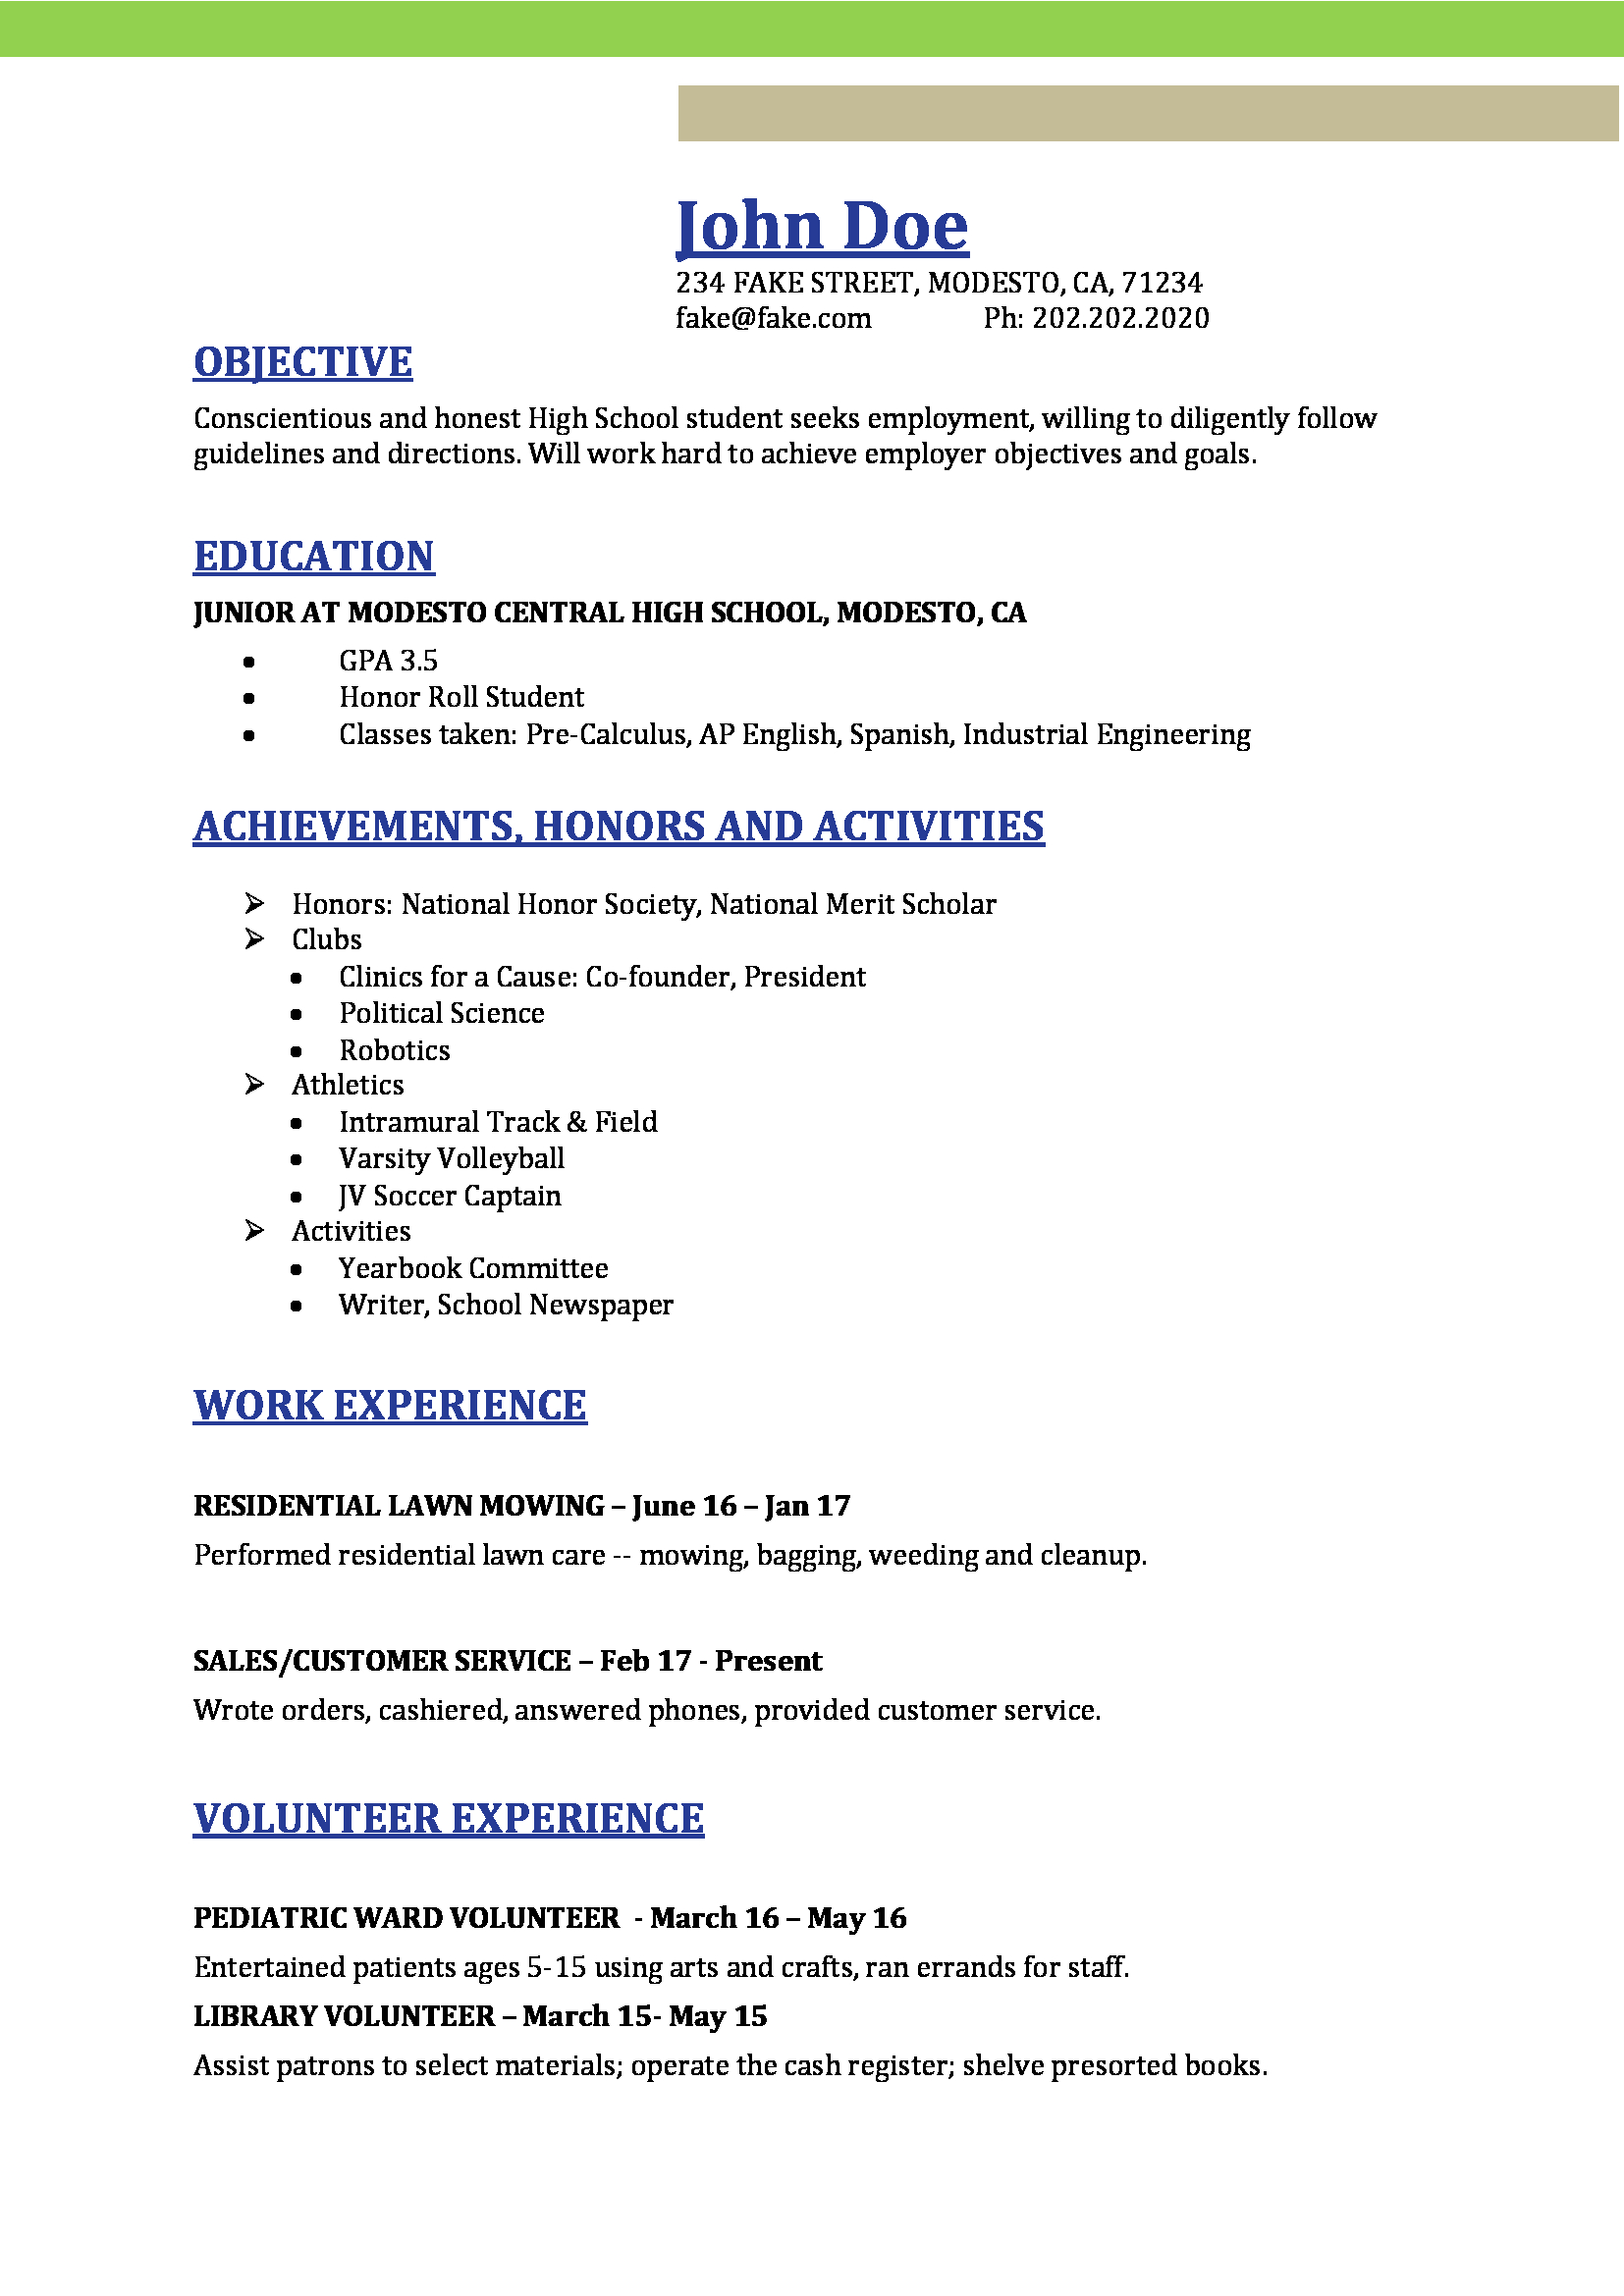 High School Resume High School Resume Templates, Image